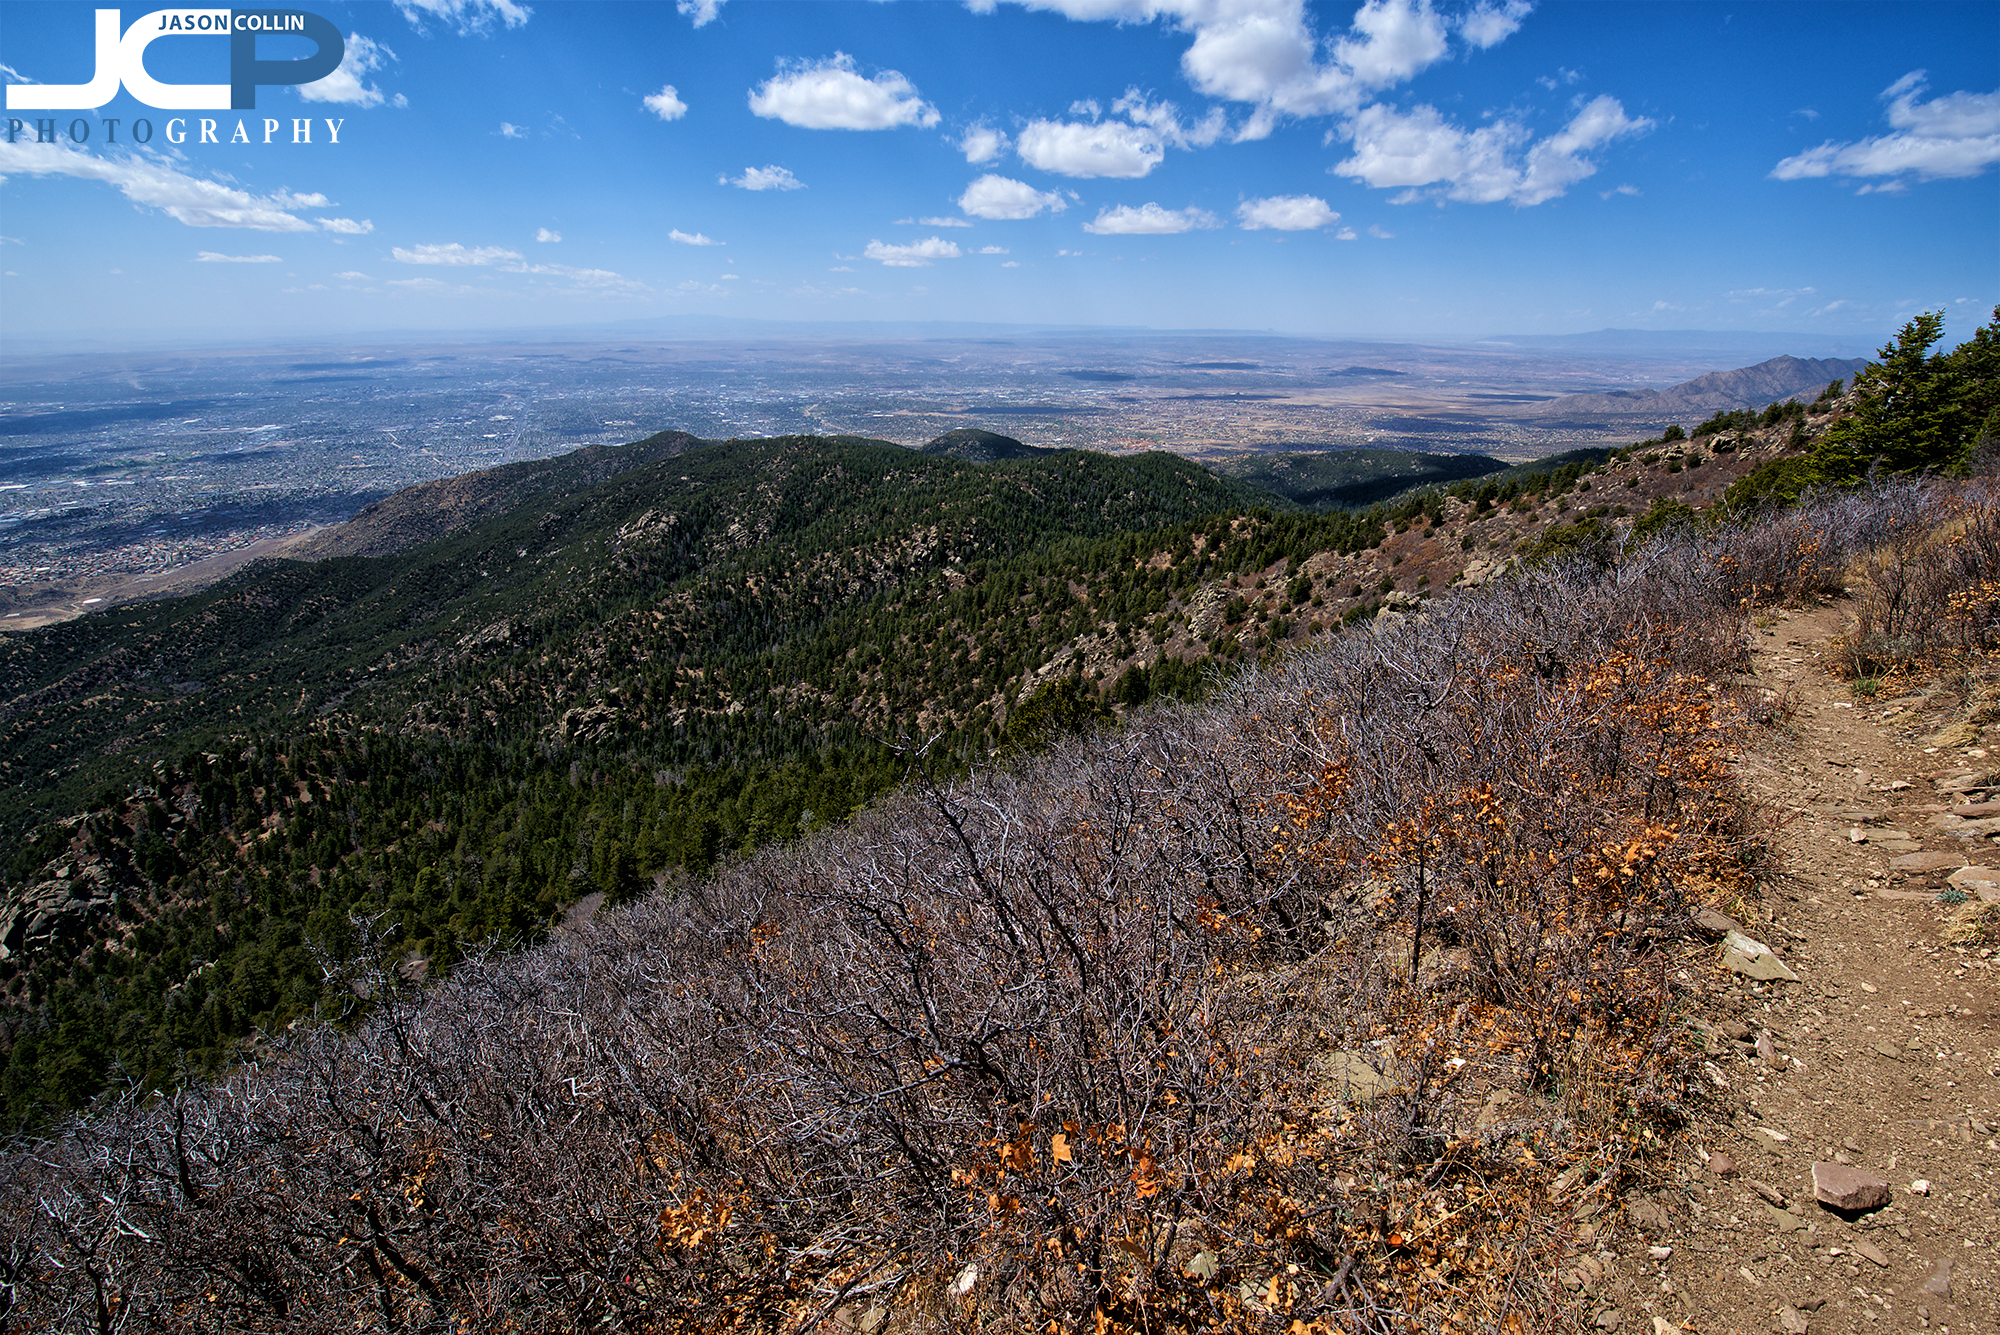 The narrow trail on the final stretch to the South Sandia Peak summit with Albuquerque, New Mexico far below.